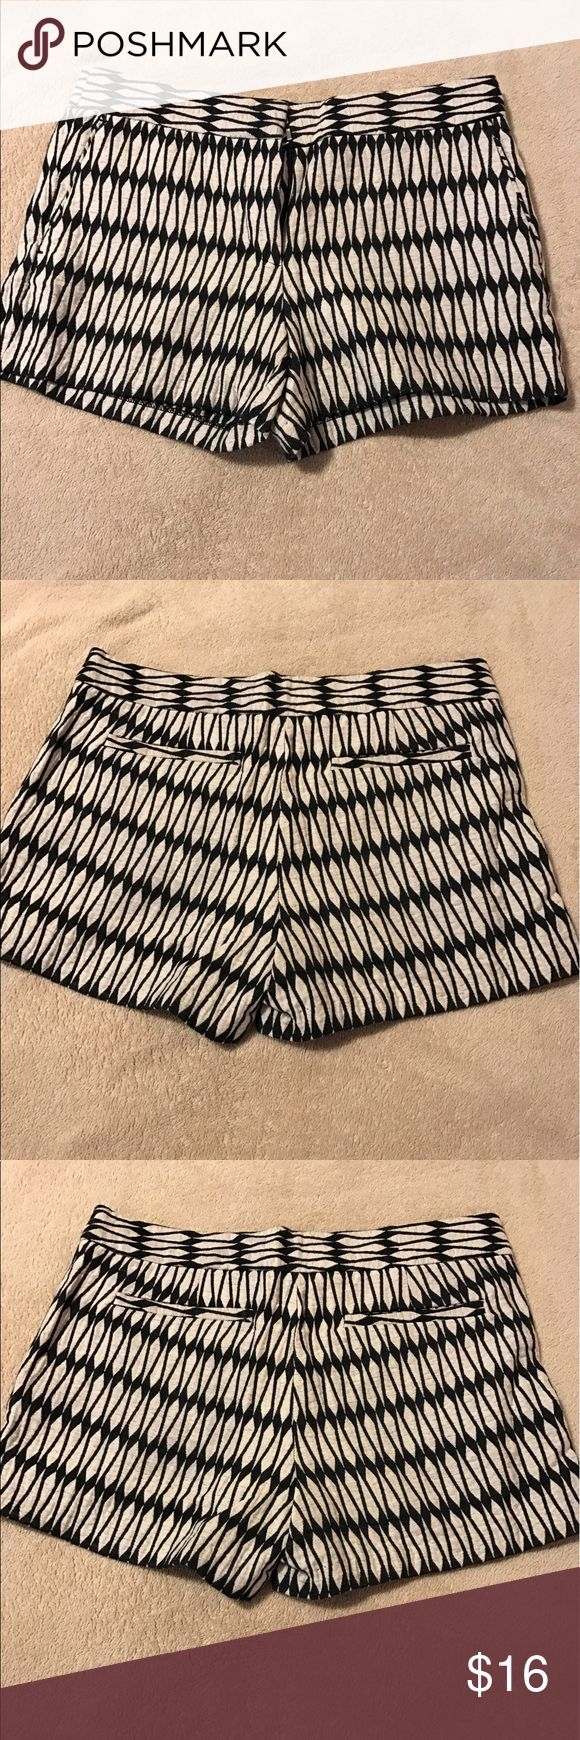 Joe Fresh Shorts Black & off-White shorts, loose fit throughout legs Joe Fresh Shorts